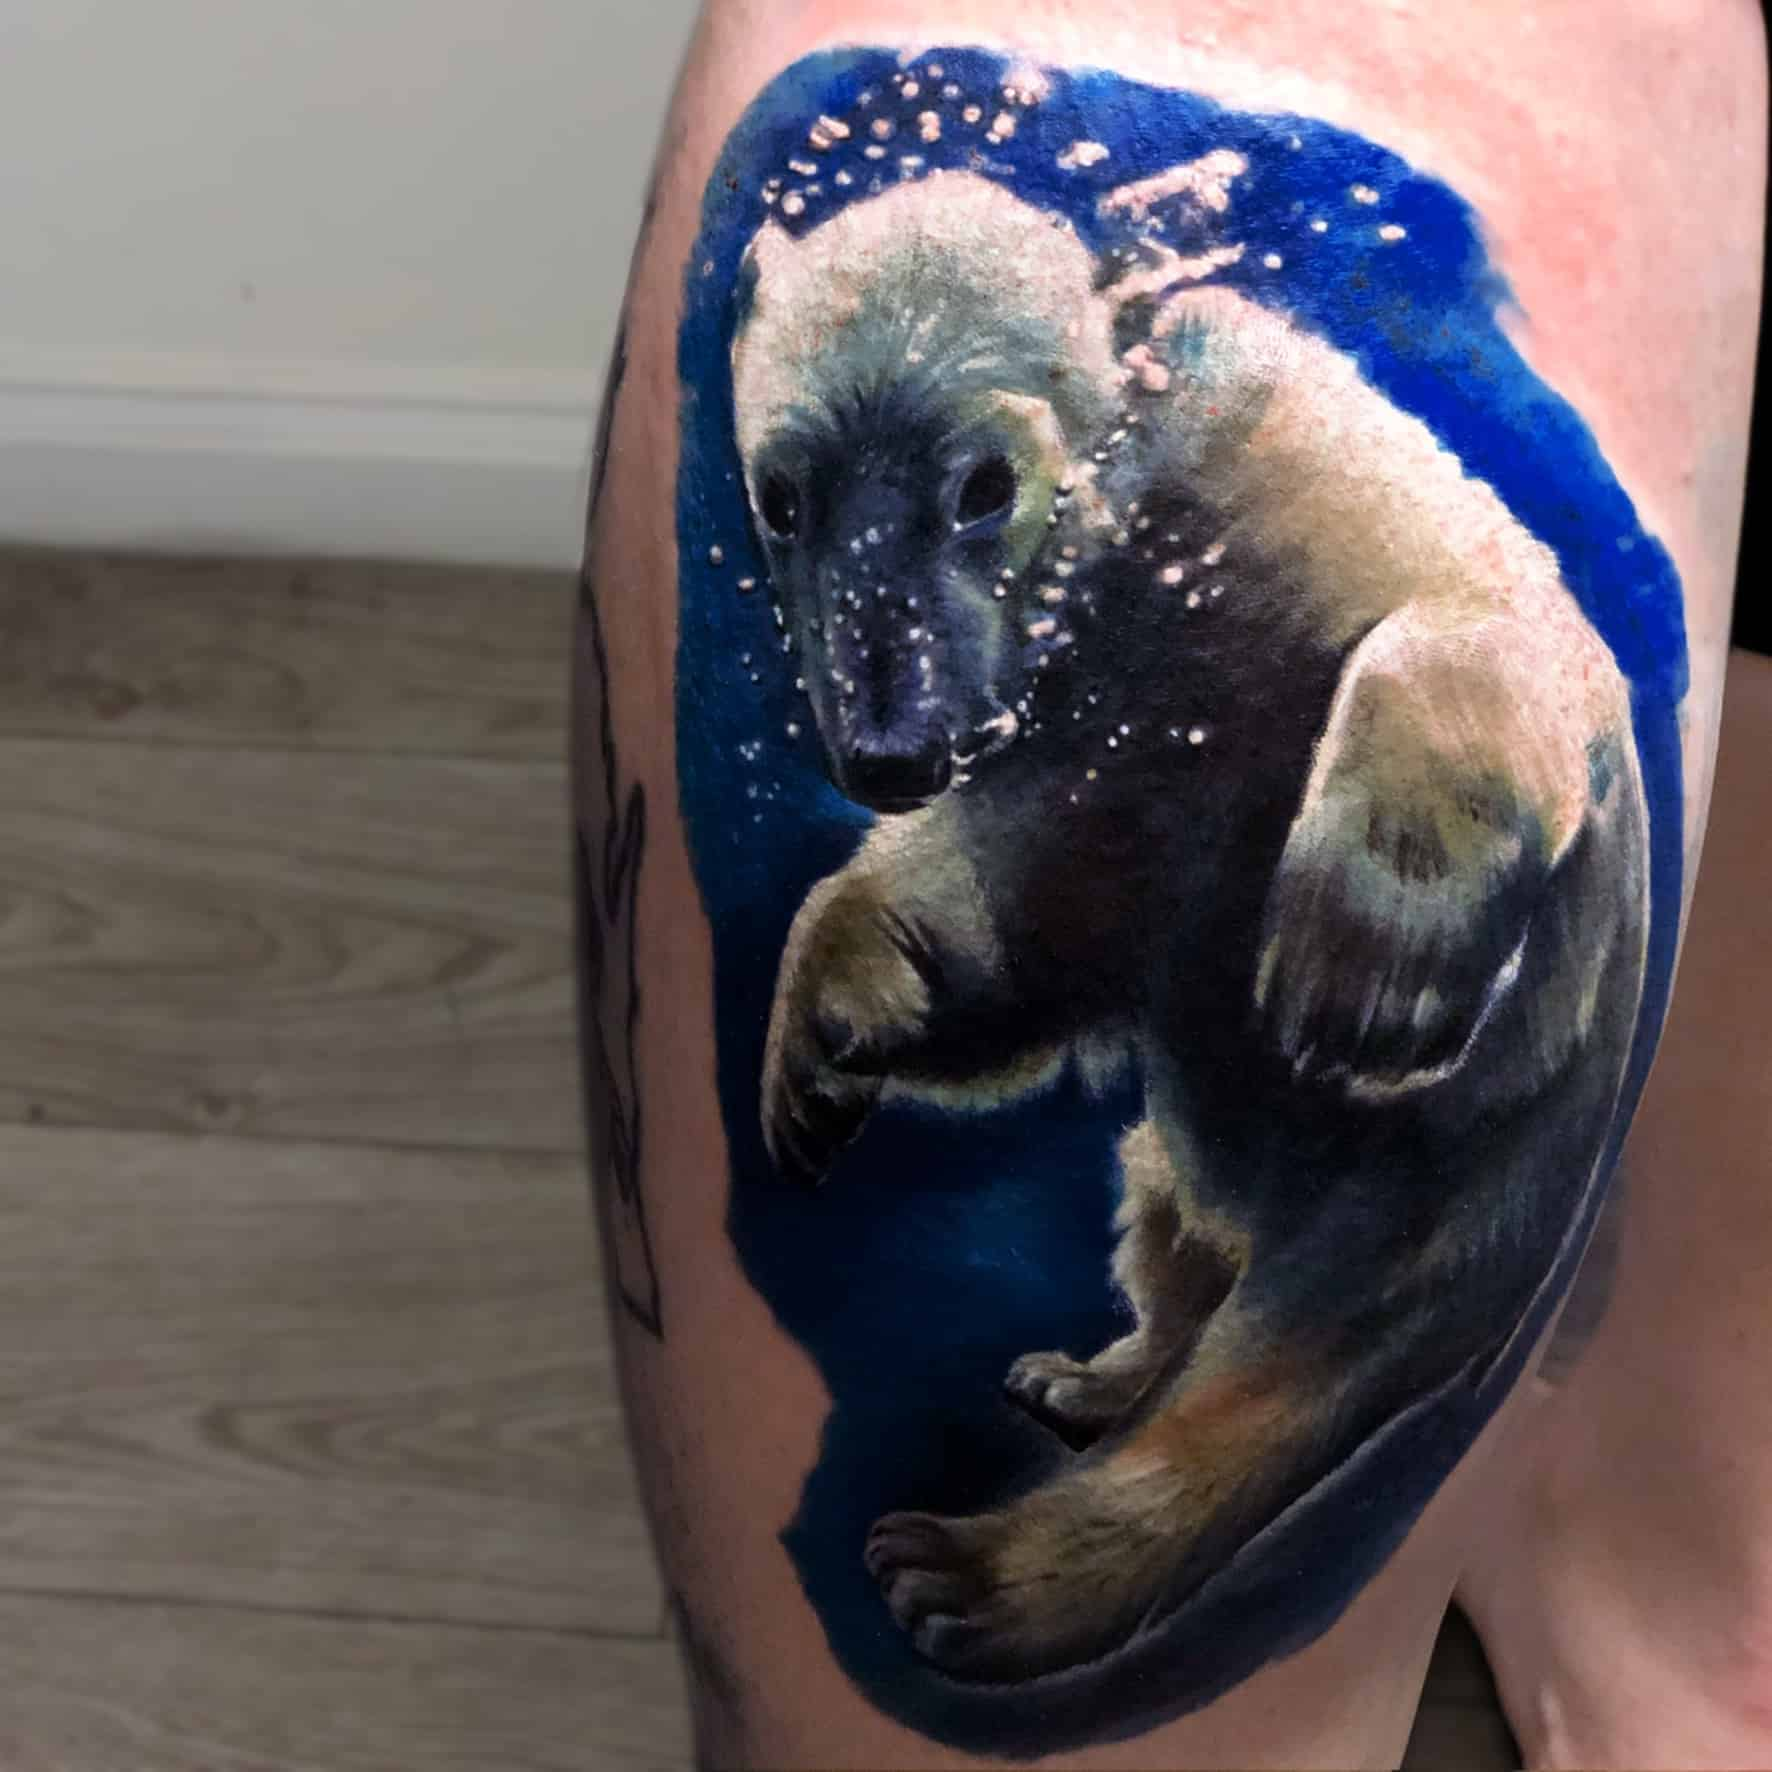 Our top 5 tattoos from the Animal Kingdom!